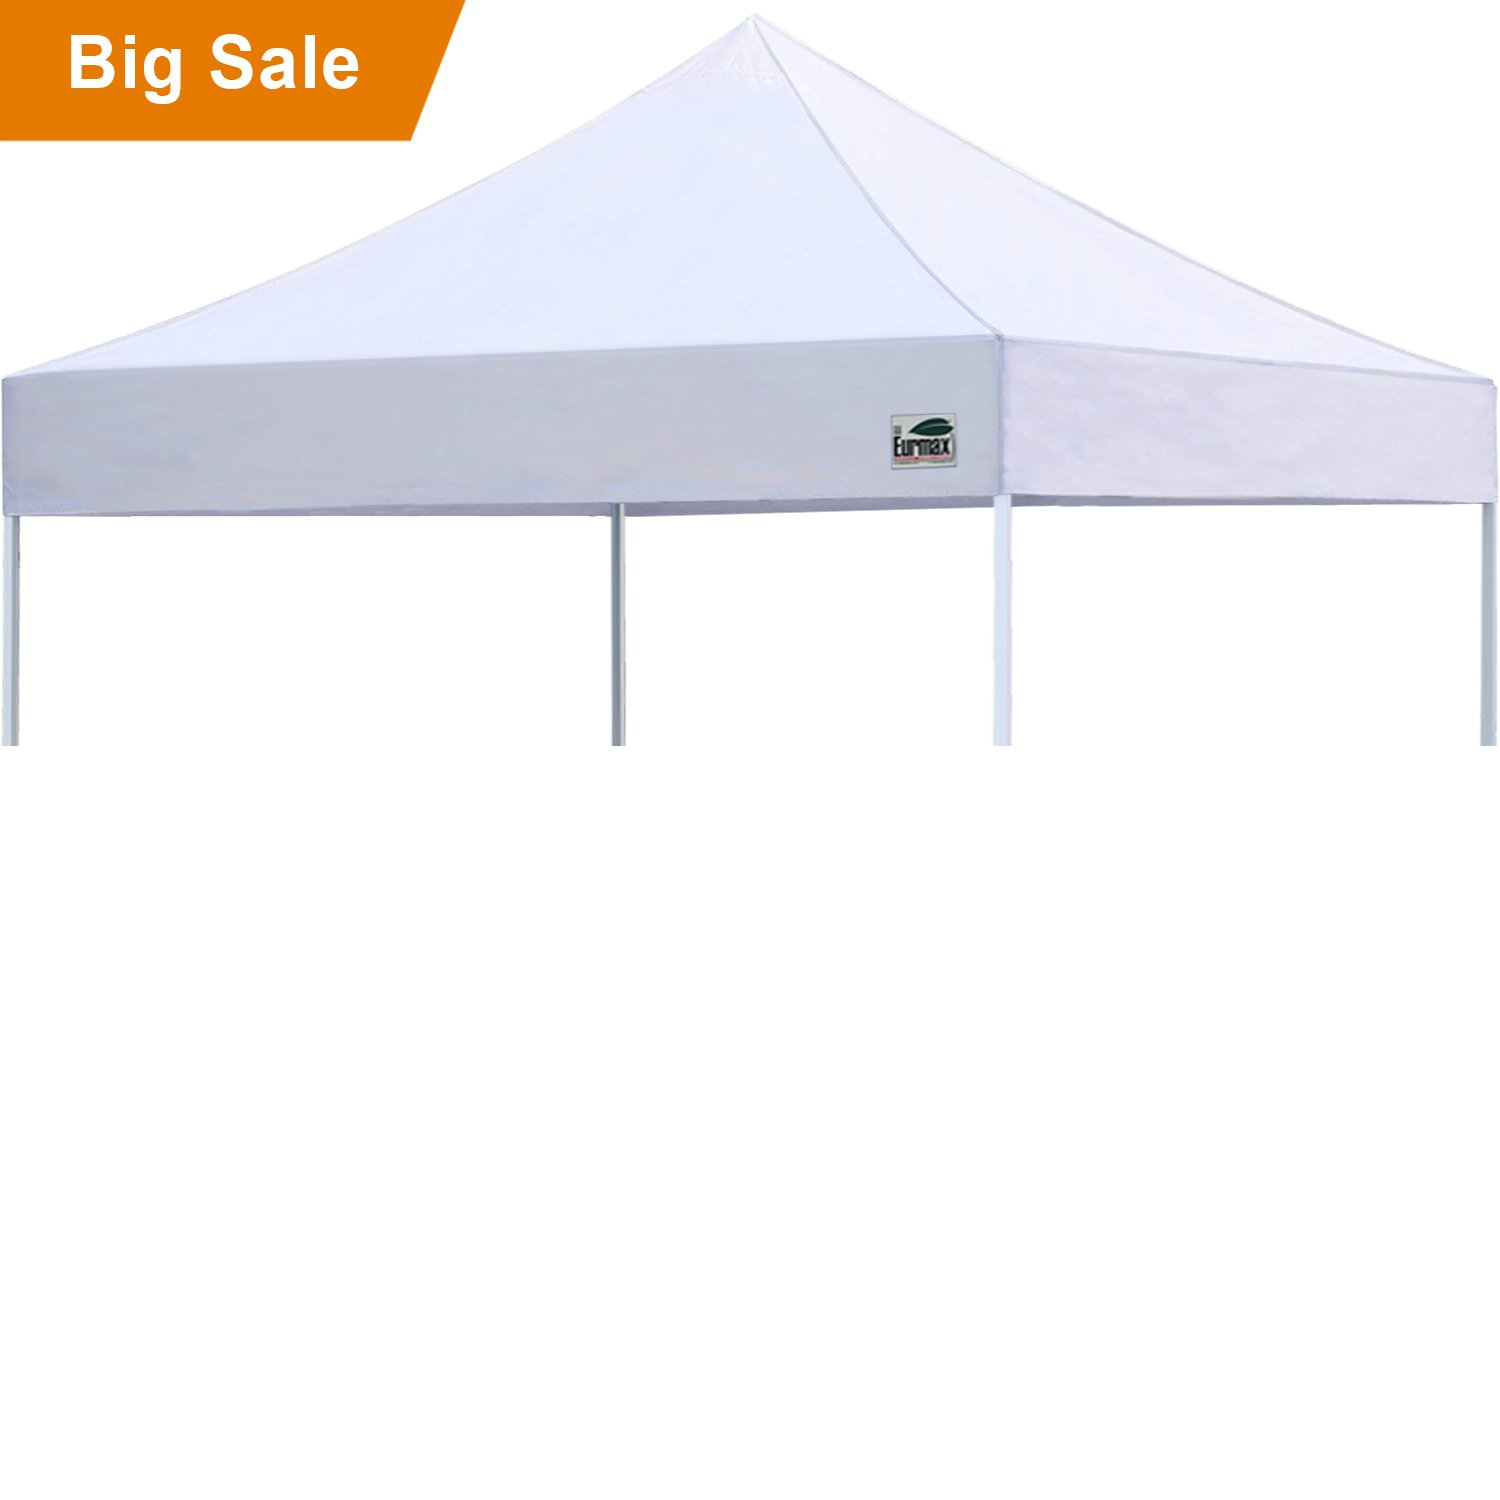 Eurmax New Pop up 10x10 Replacement Instant Ez Canopy Top Cover Choose 15 Colors (White)